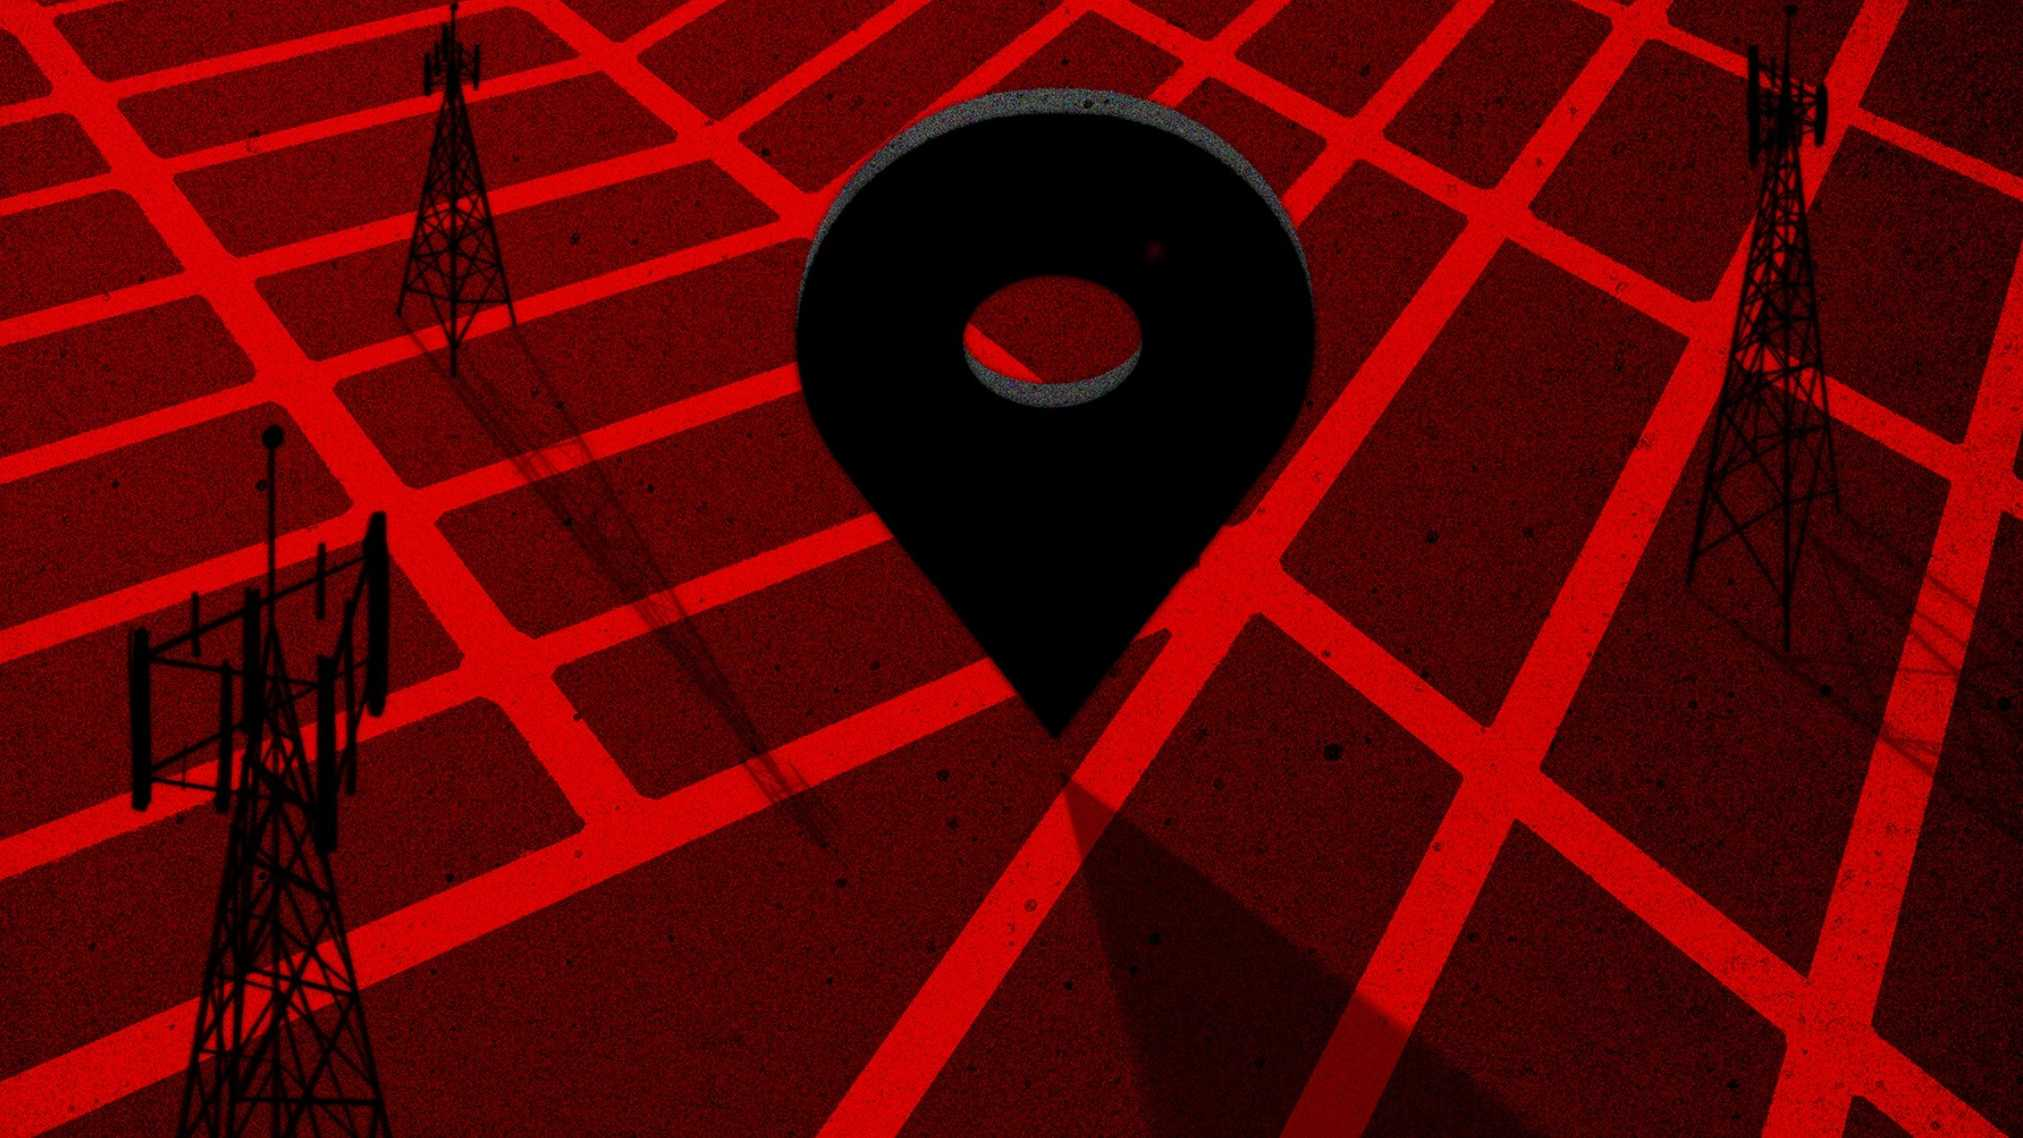 Despite the ban, data brokers continue to use location tracking in X mode